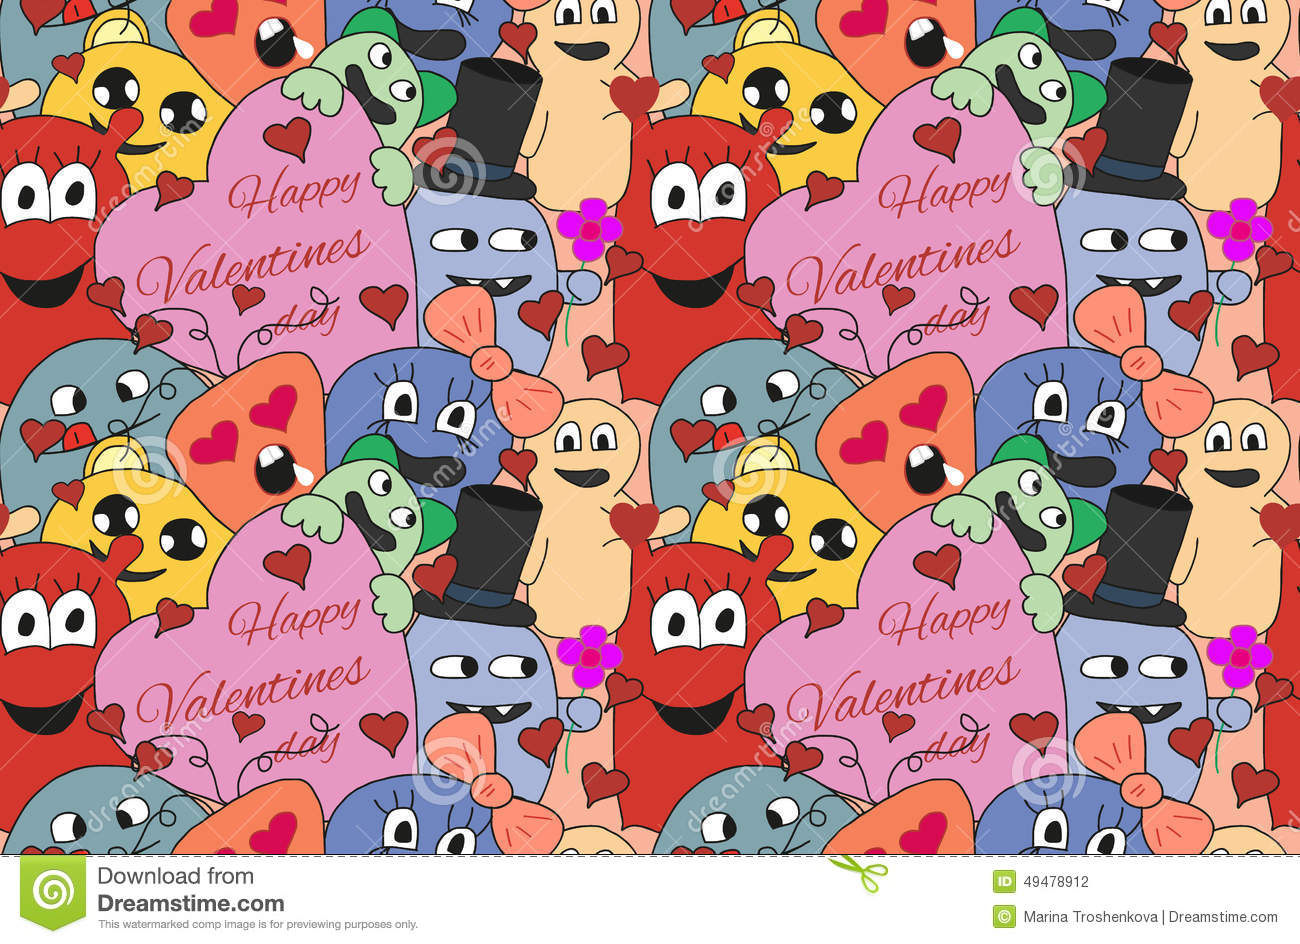 Monsters Valentine day. Seamless vector pattern